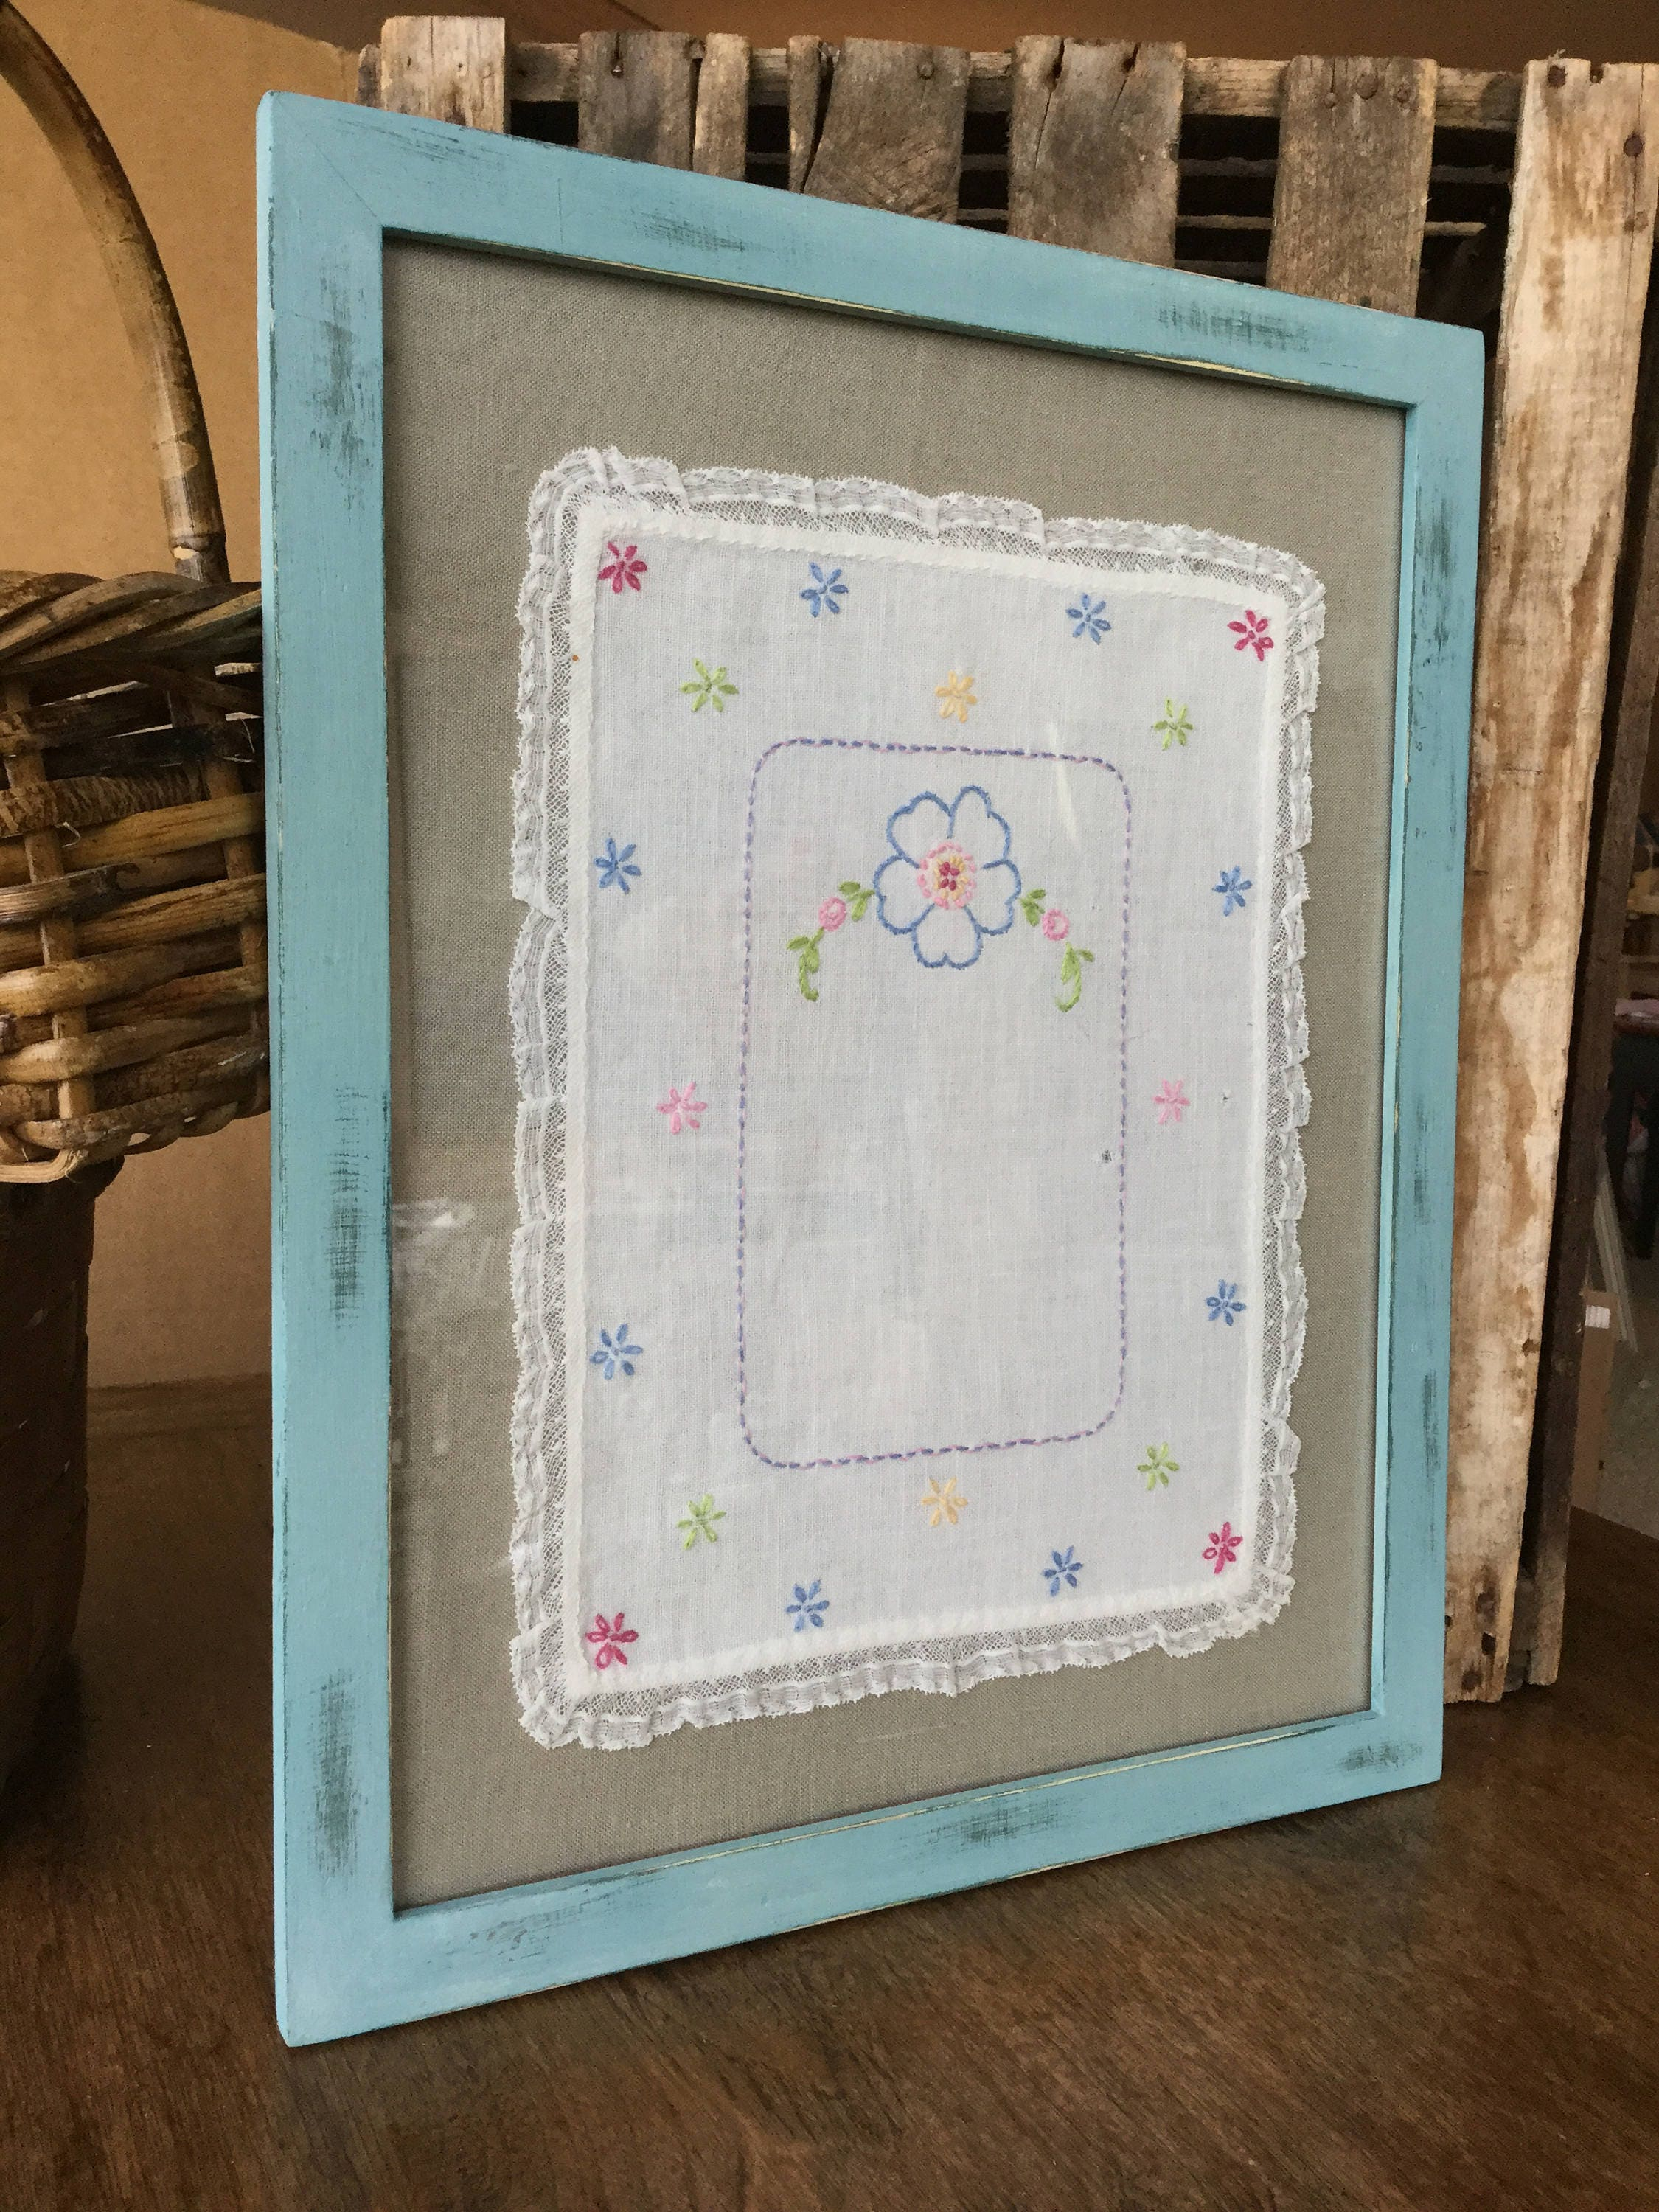 Framed vintage embroidery lace trim floral design choice of framed vintage embroidery lace trim floral design choice of yellow or blue frame jeuxipadfo Gallery